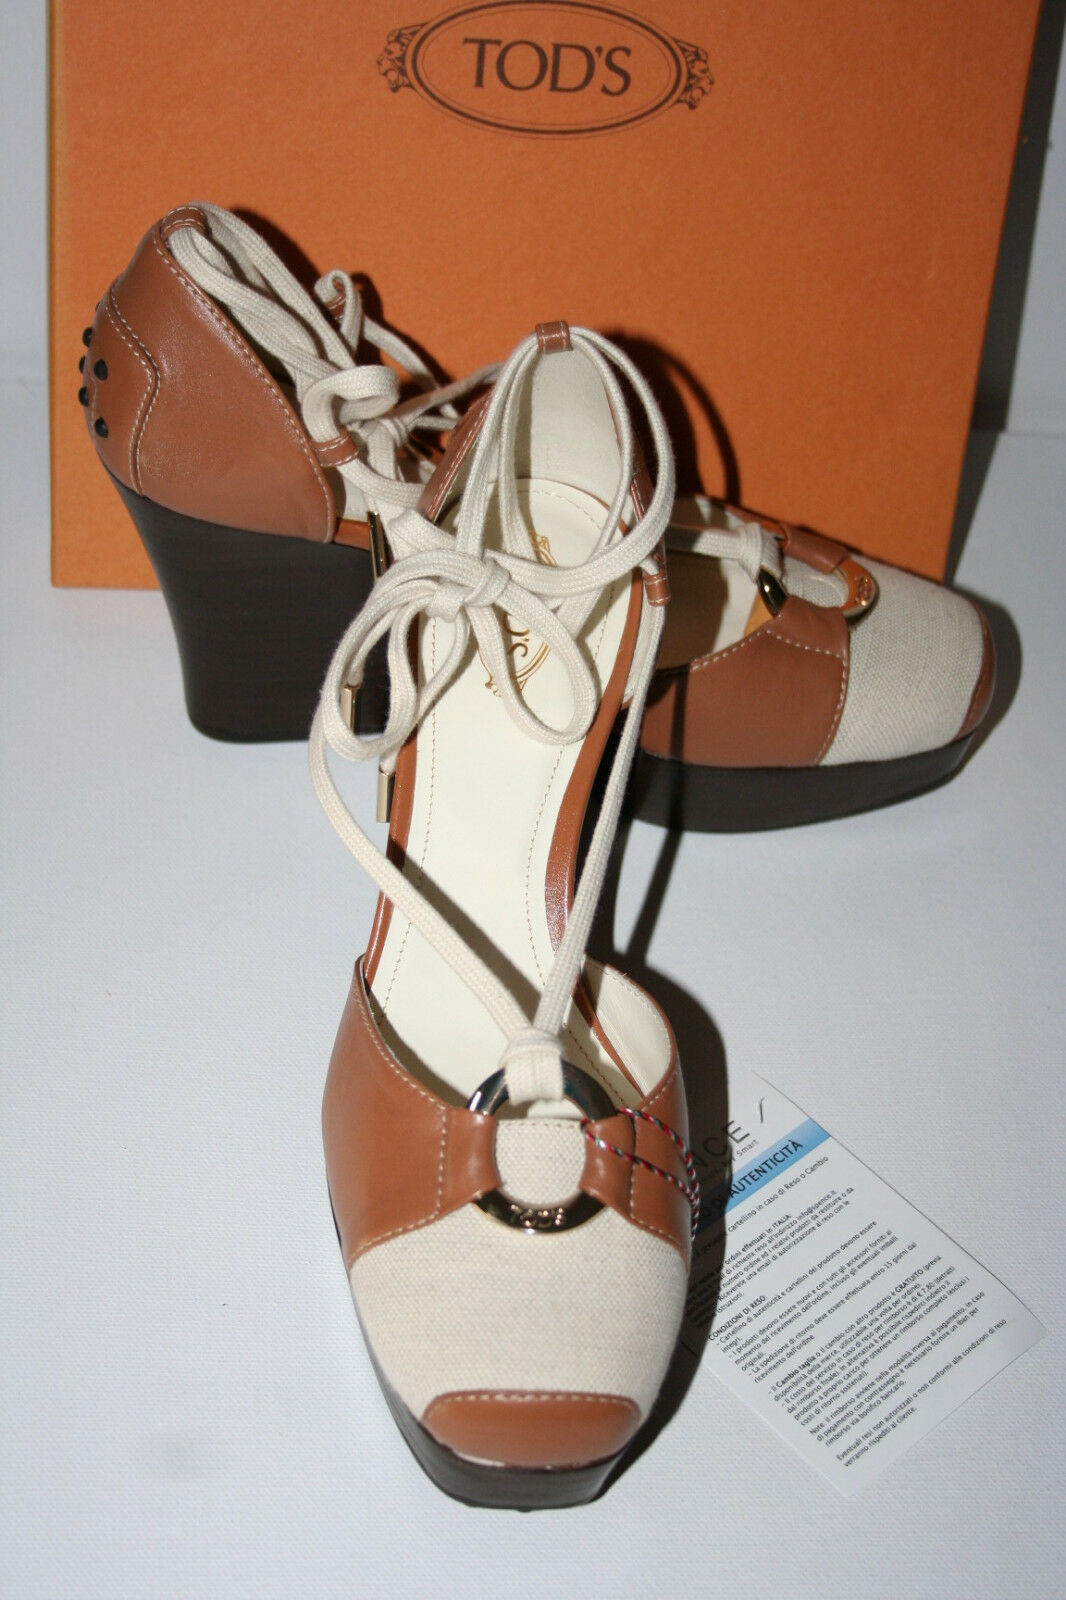 TOD´S TODS Pumps Schuhe